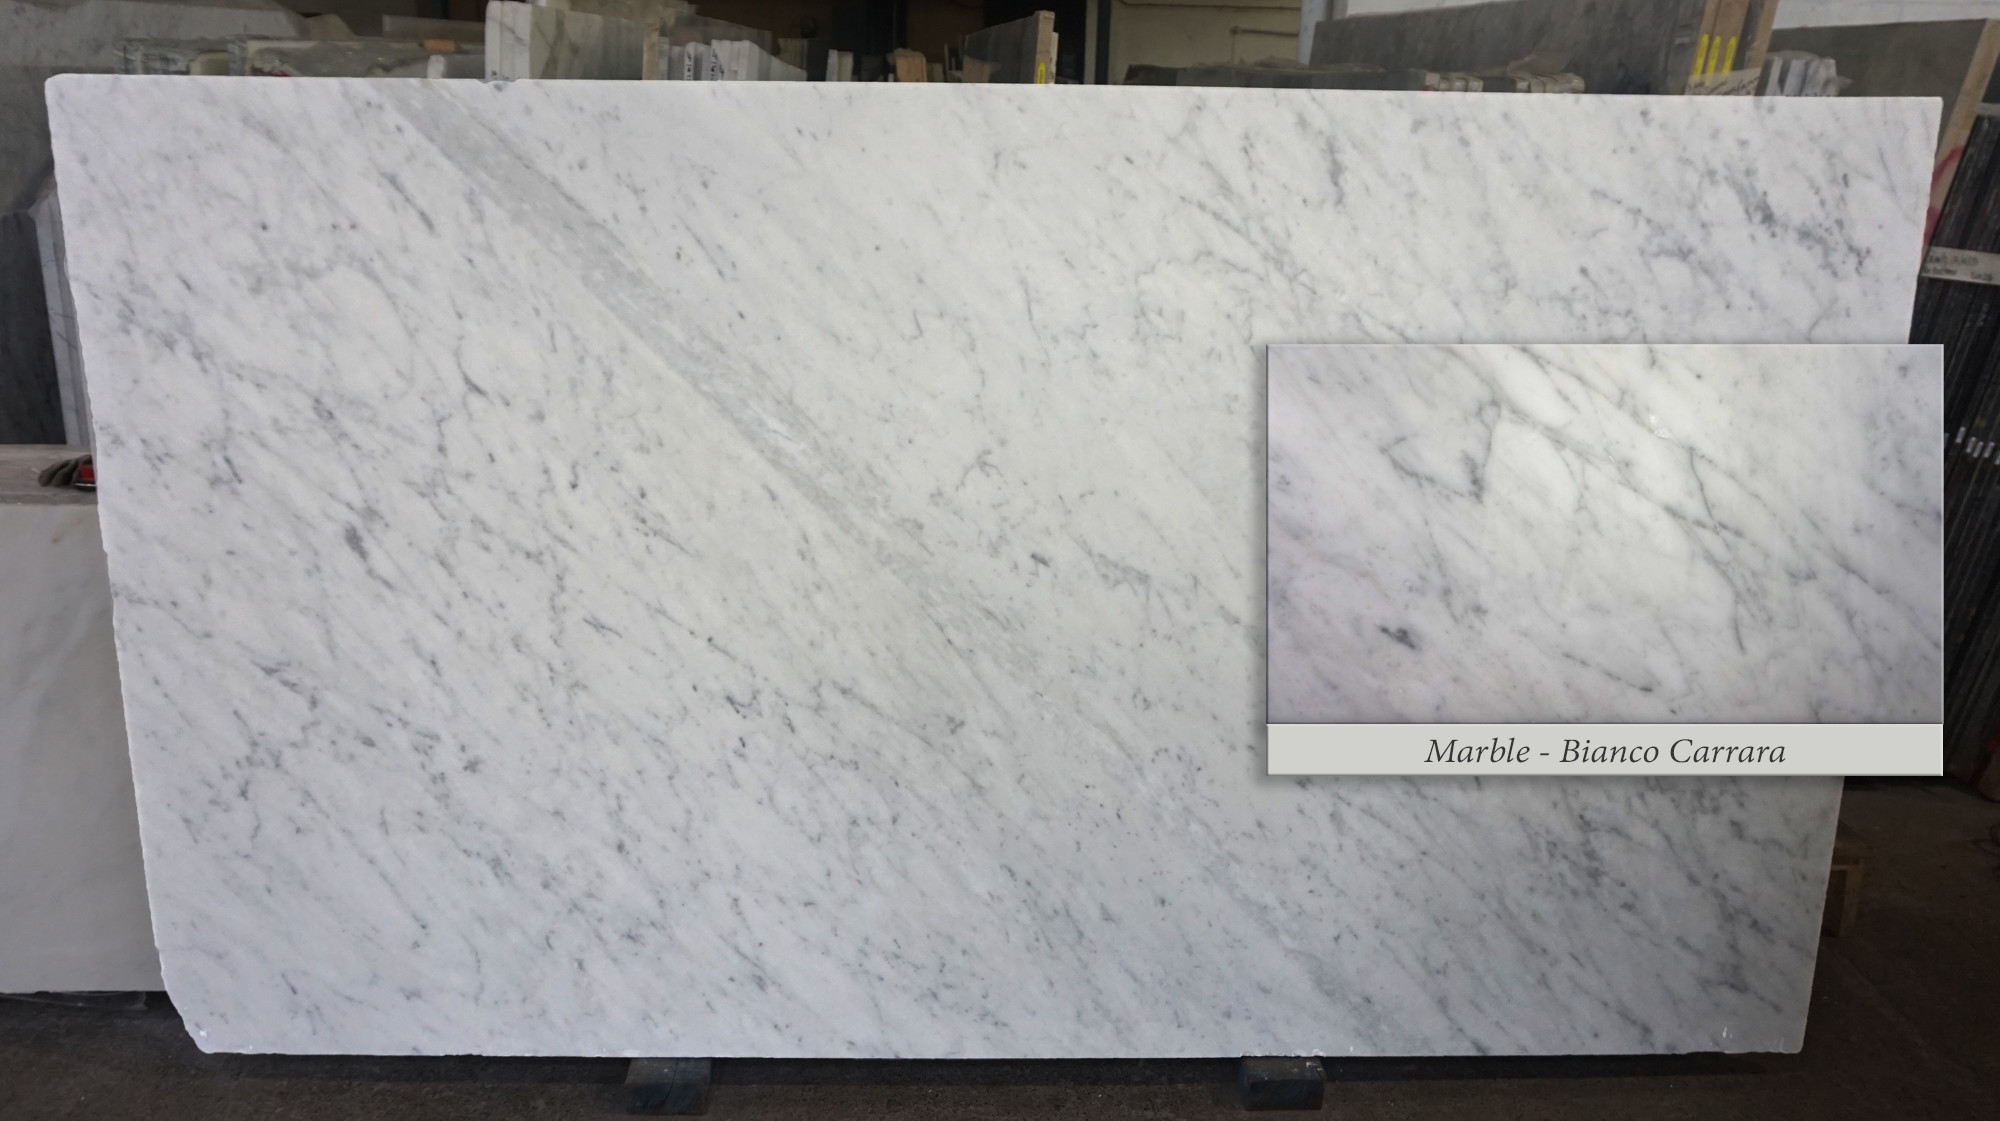 Bianco Carrara Marble : Materials update marble madness mglw